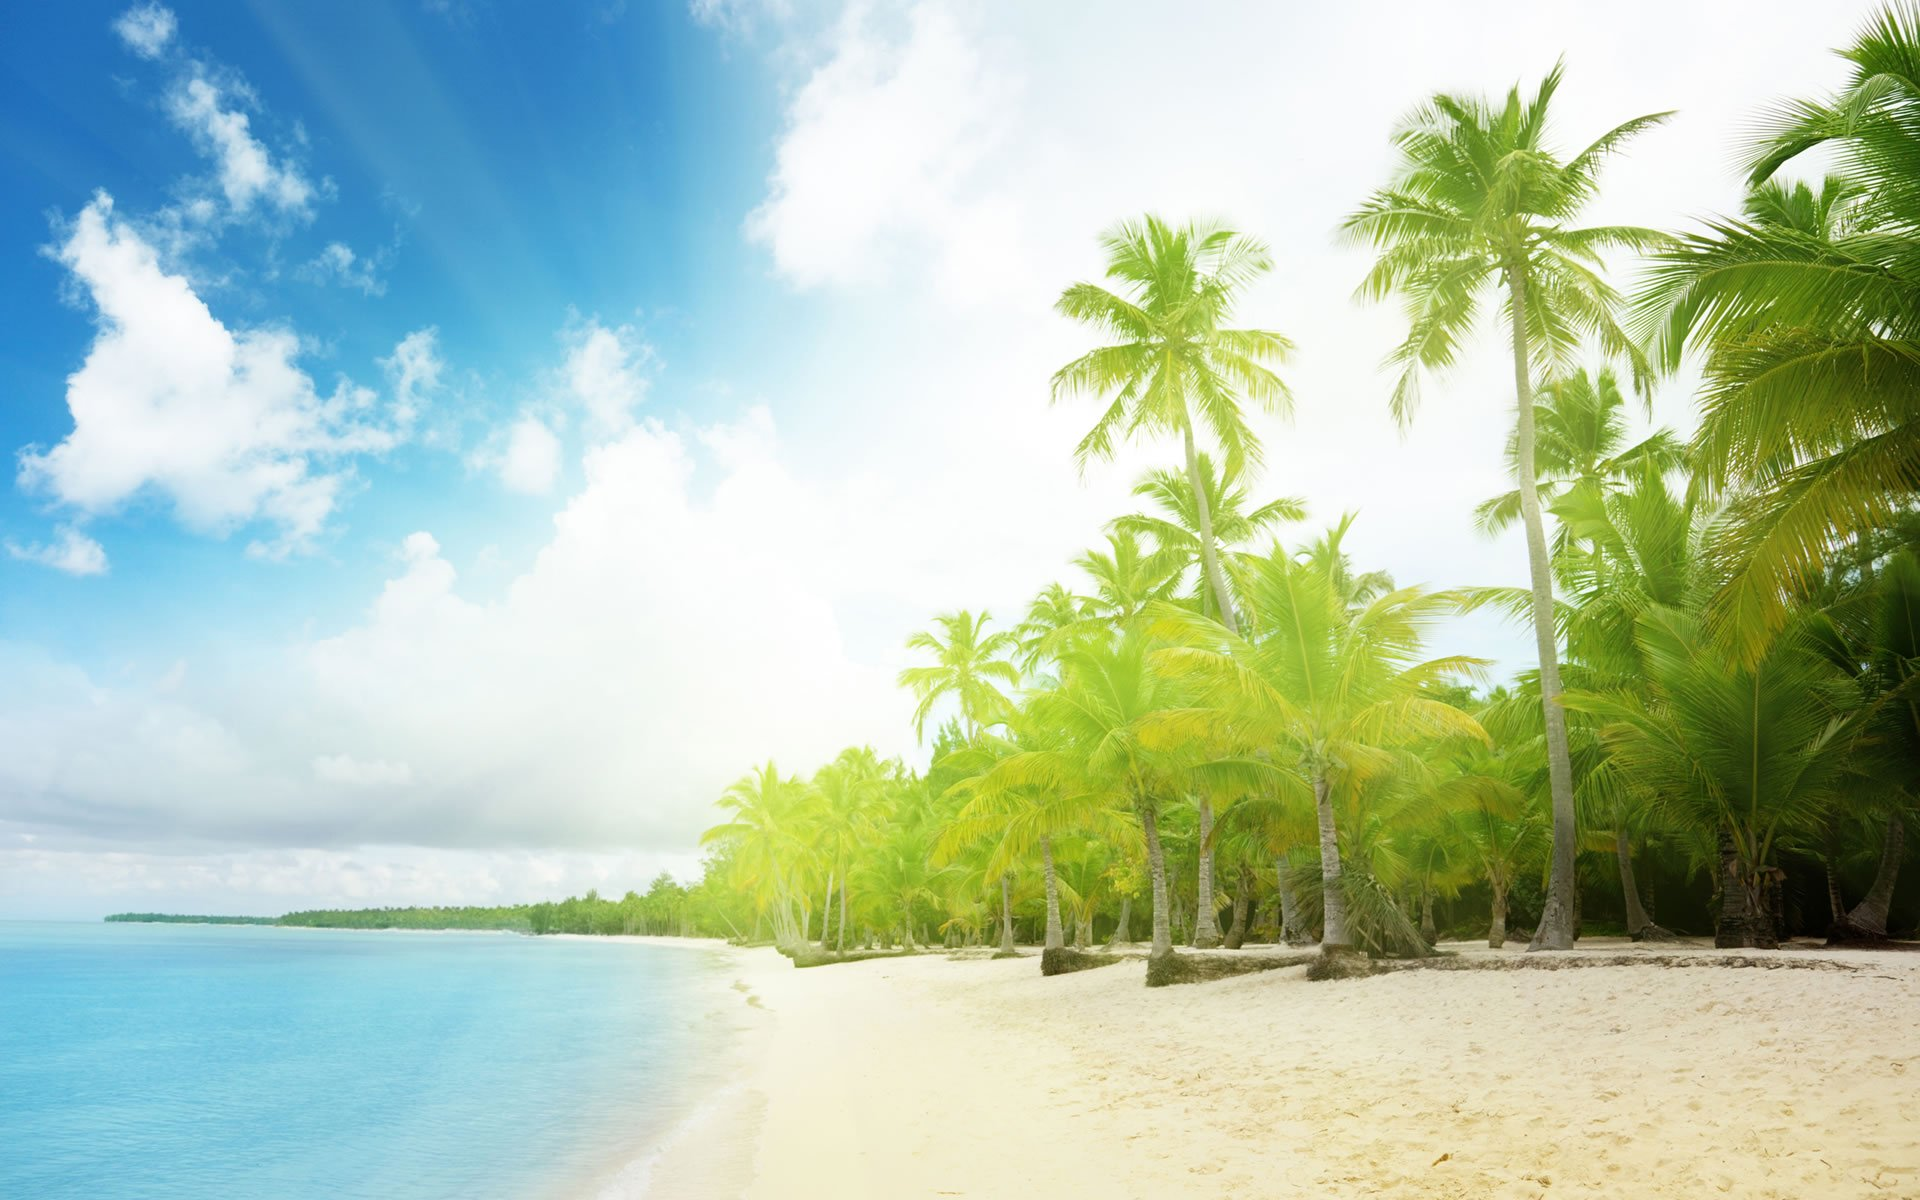 wallpapers nature landscape sunny beach wallpaper background wallpaper 1920x1200